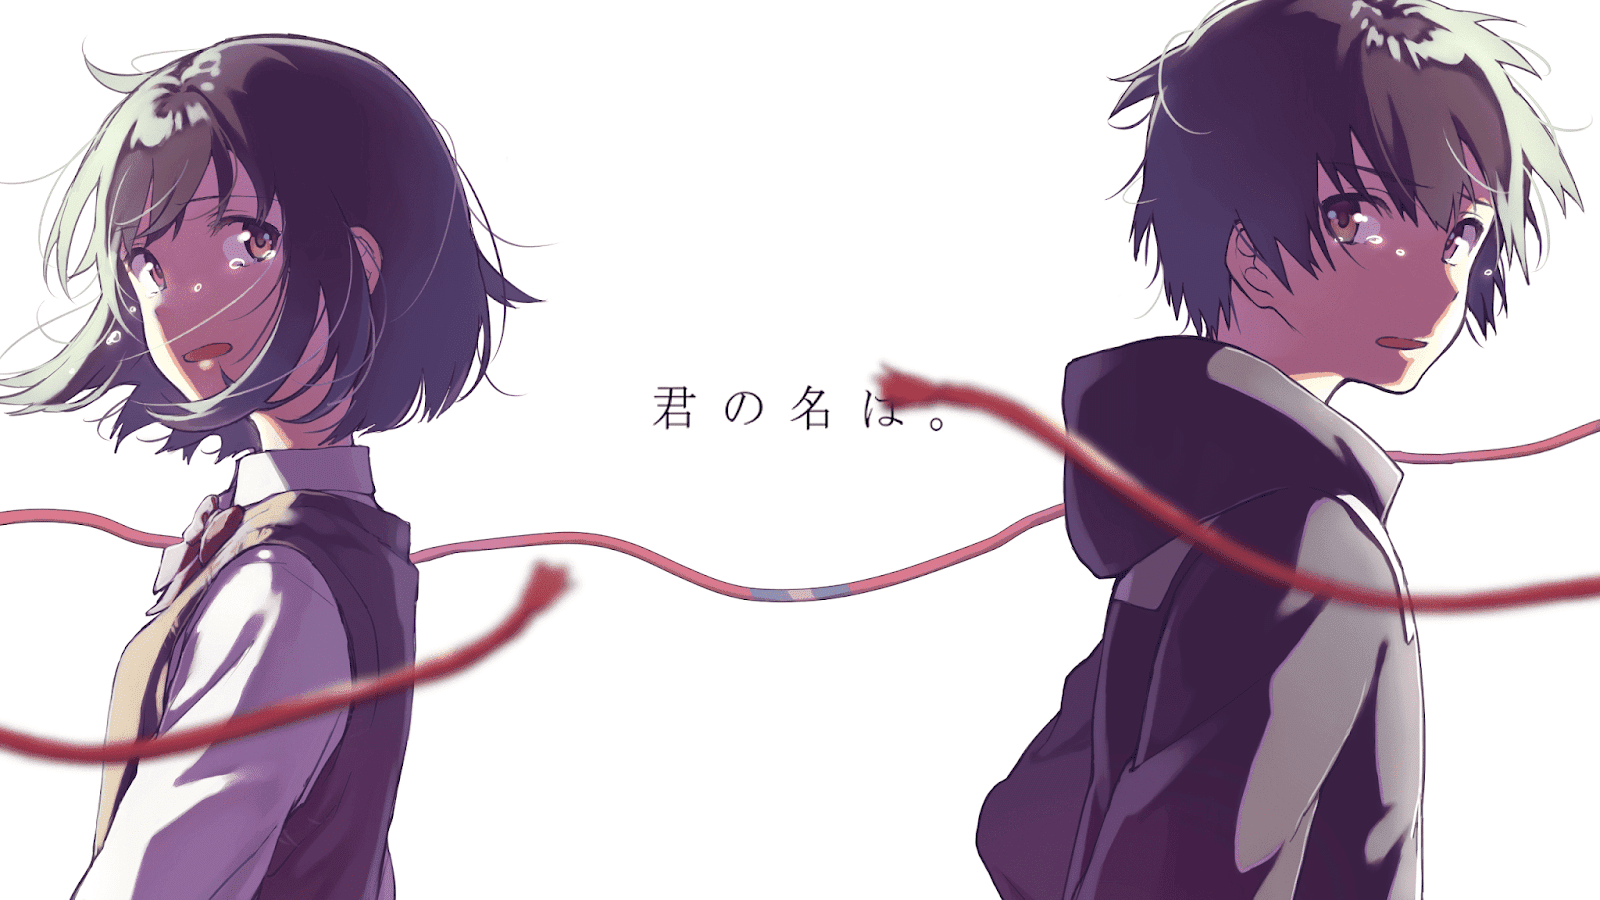 AowVN%2B%252834%2529 - [ Hình Nền ] Anime Your Name. - Kimi no Nawa full HD cực đẹp | Anime Wallpaper